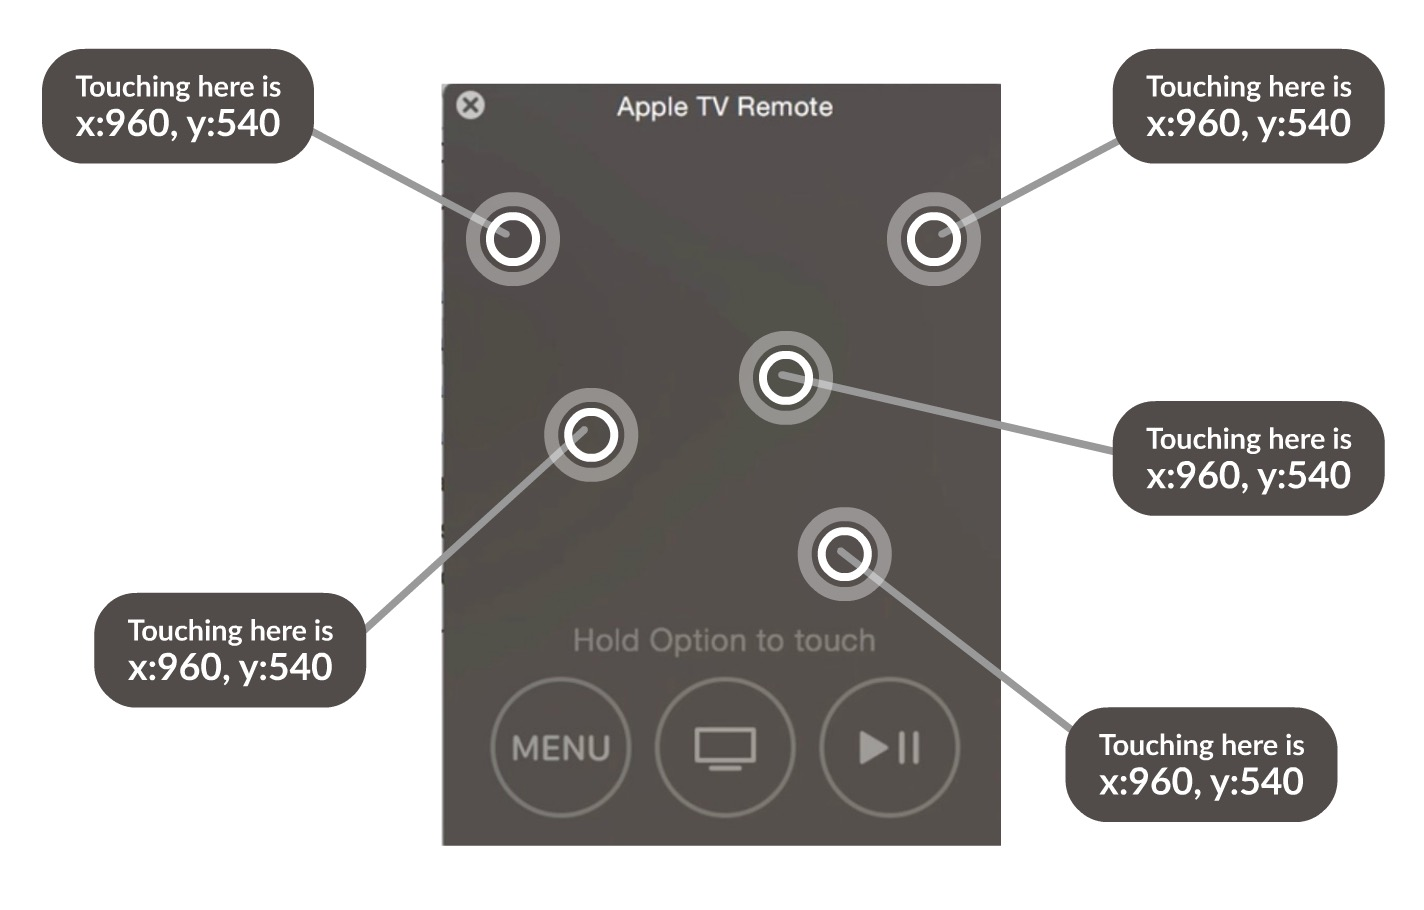 CGPoint locations on the new Apple TV Remote and tvOS